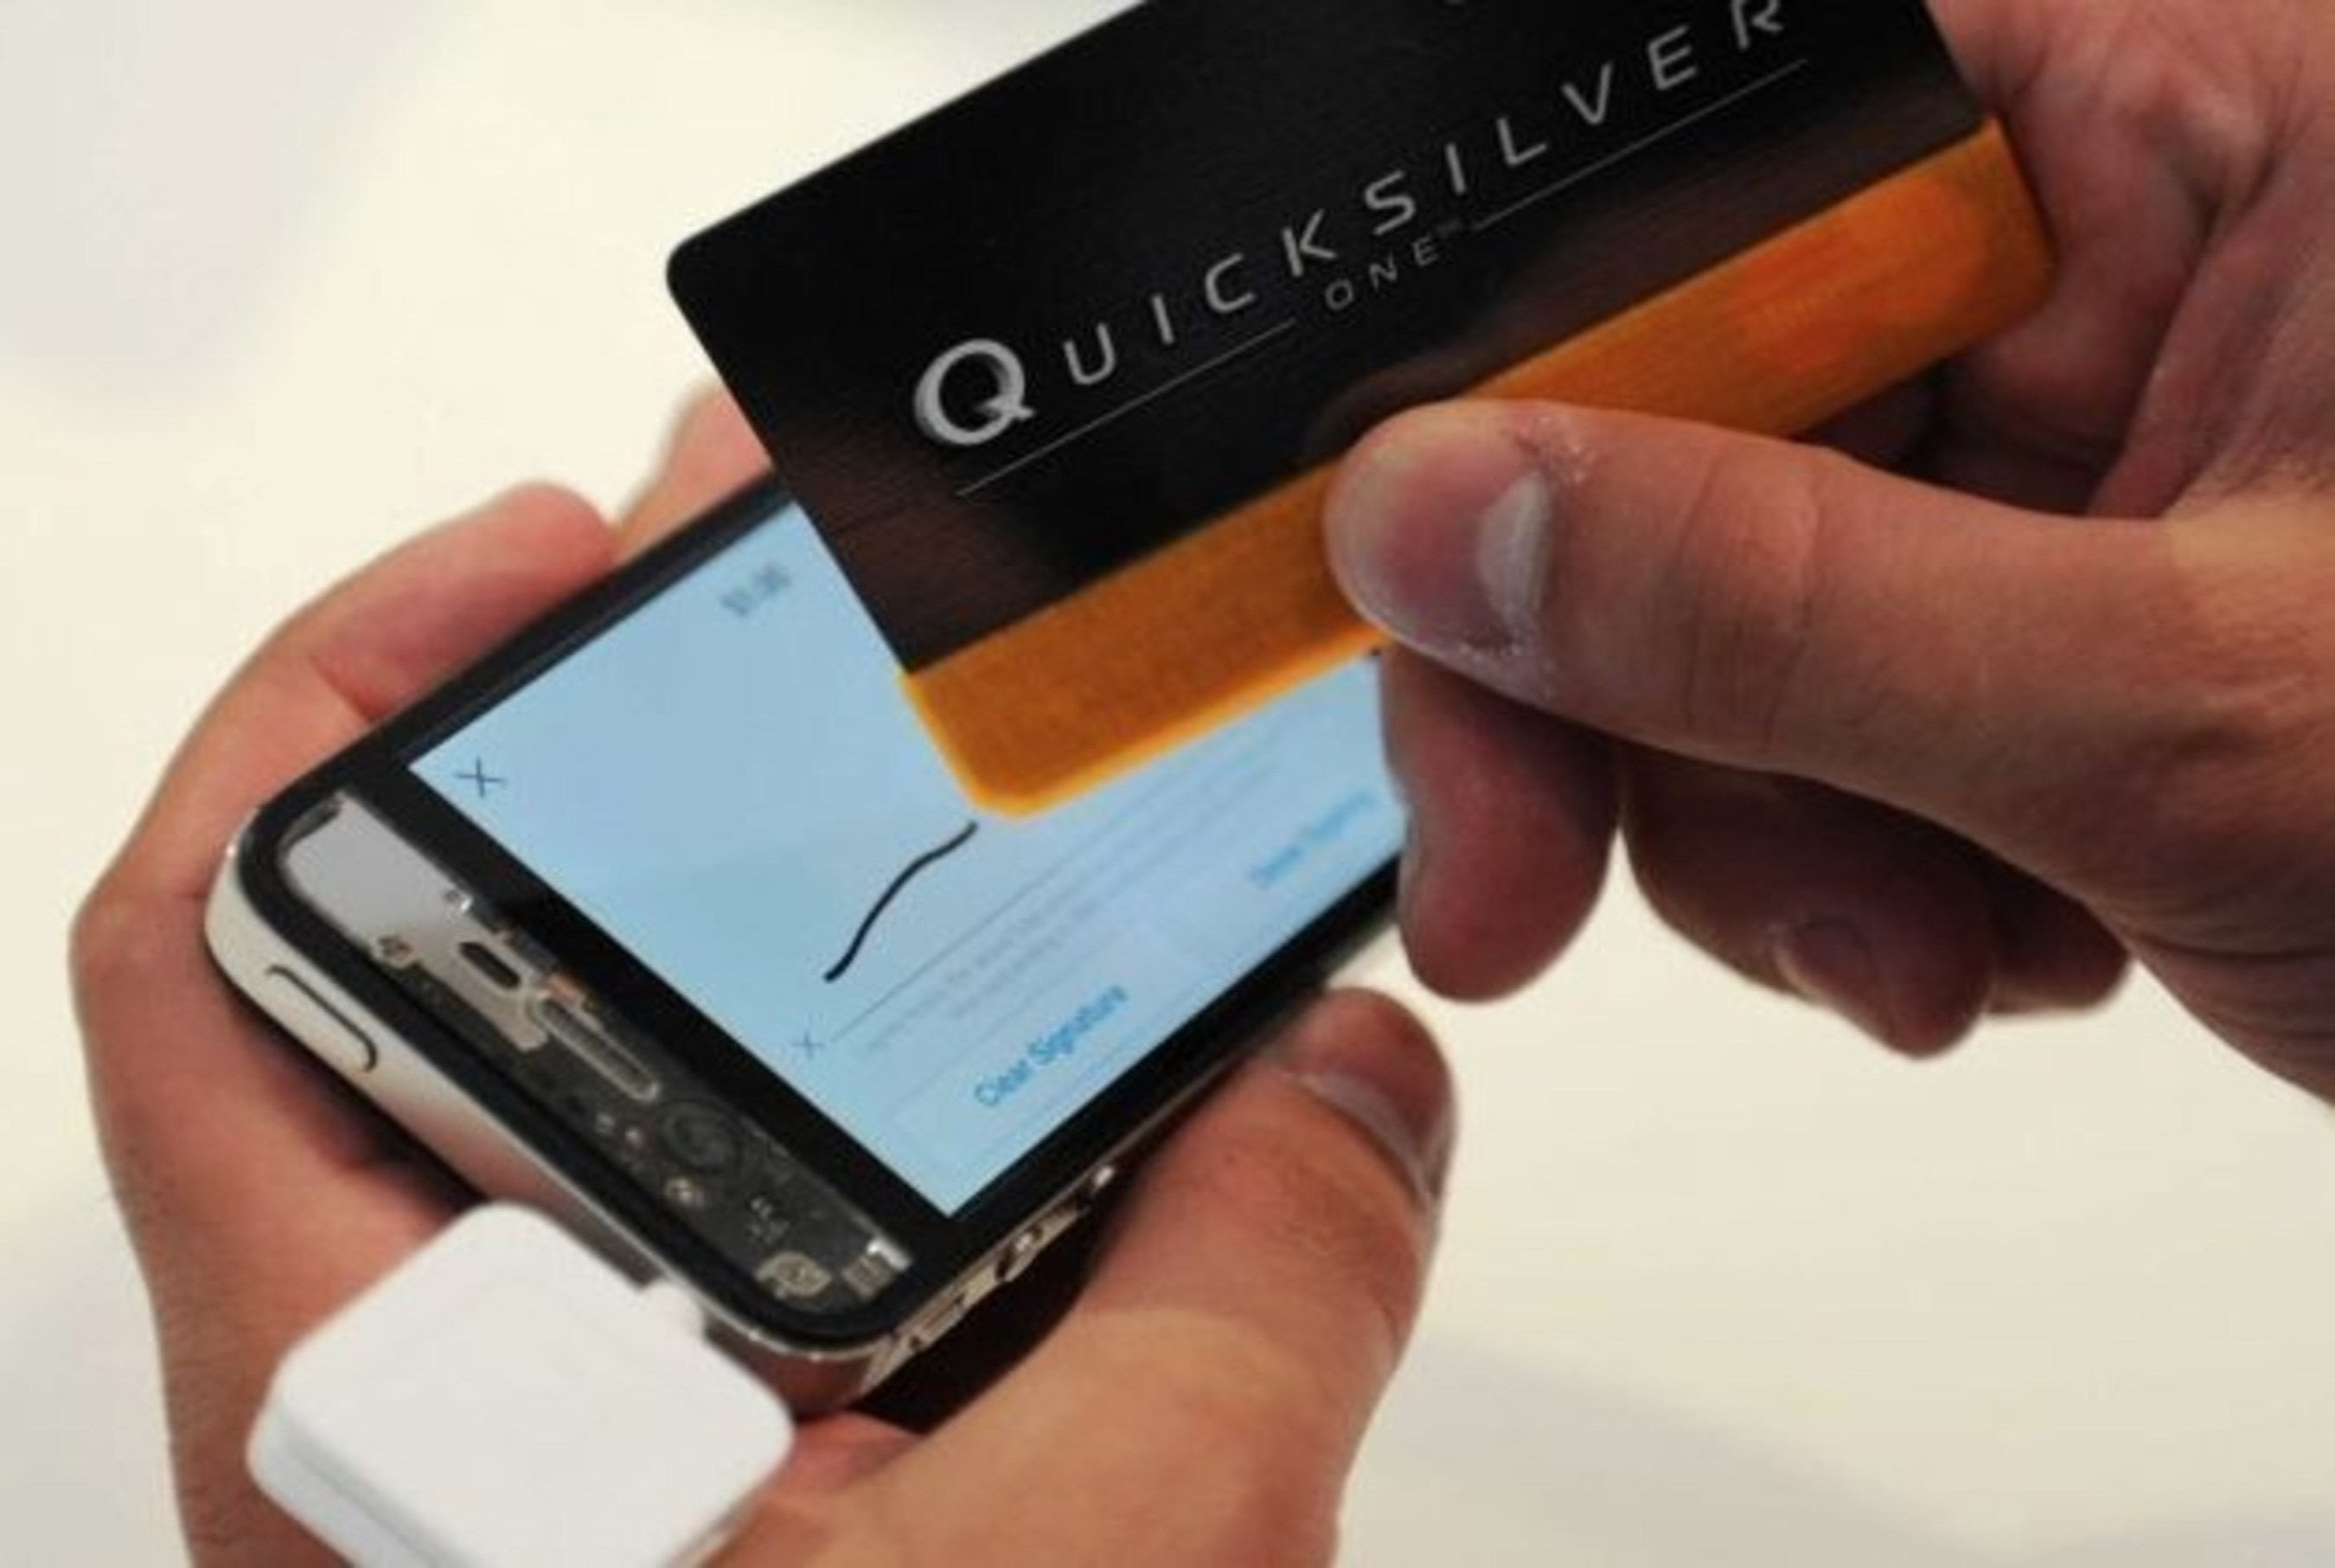 The First Ever Antimicrobial Credit Card Sleeve Stylus: Swipe, Tap, Sign & Go